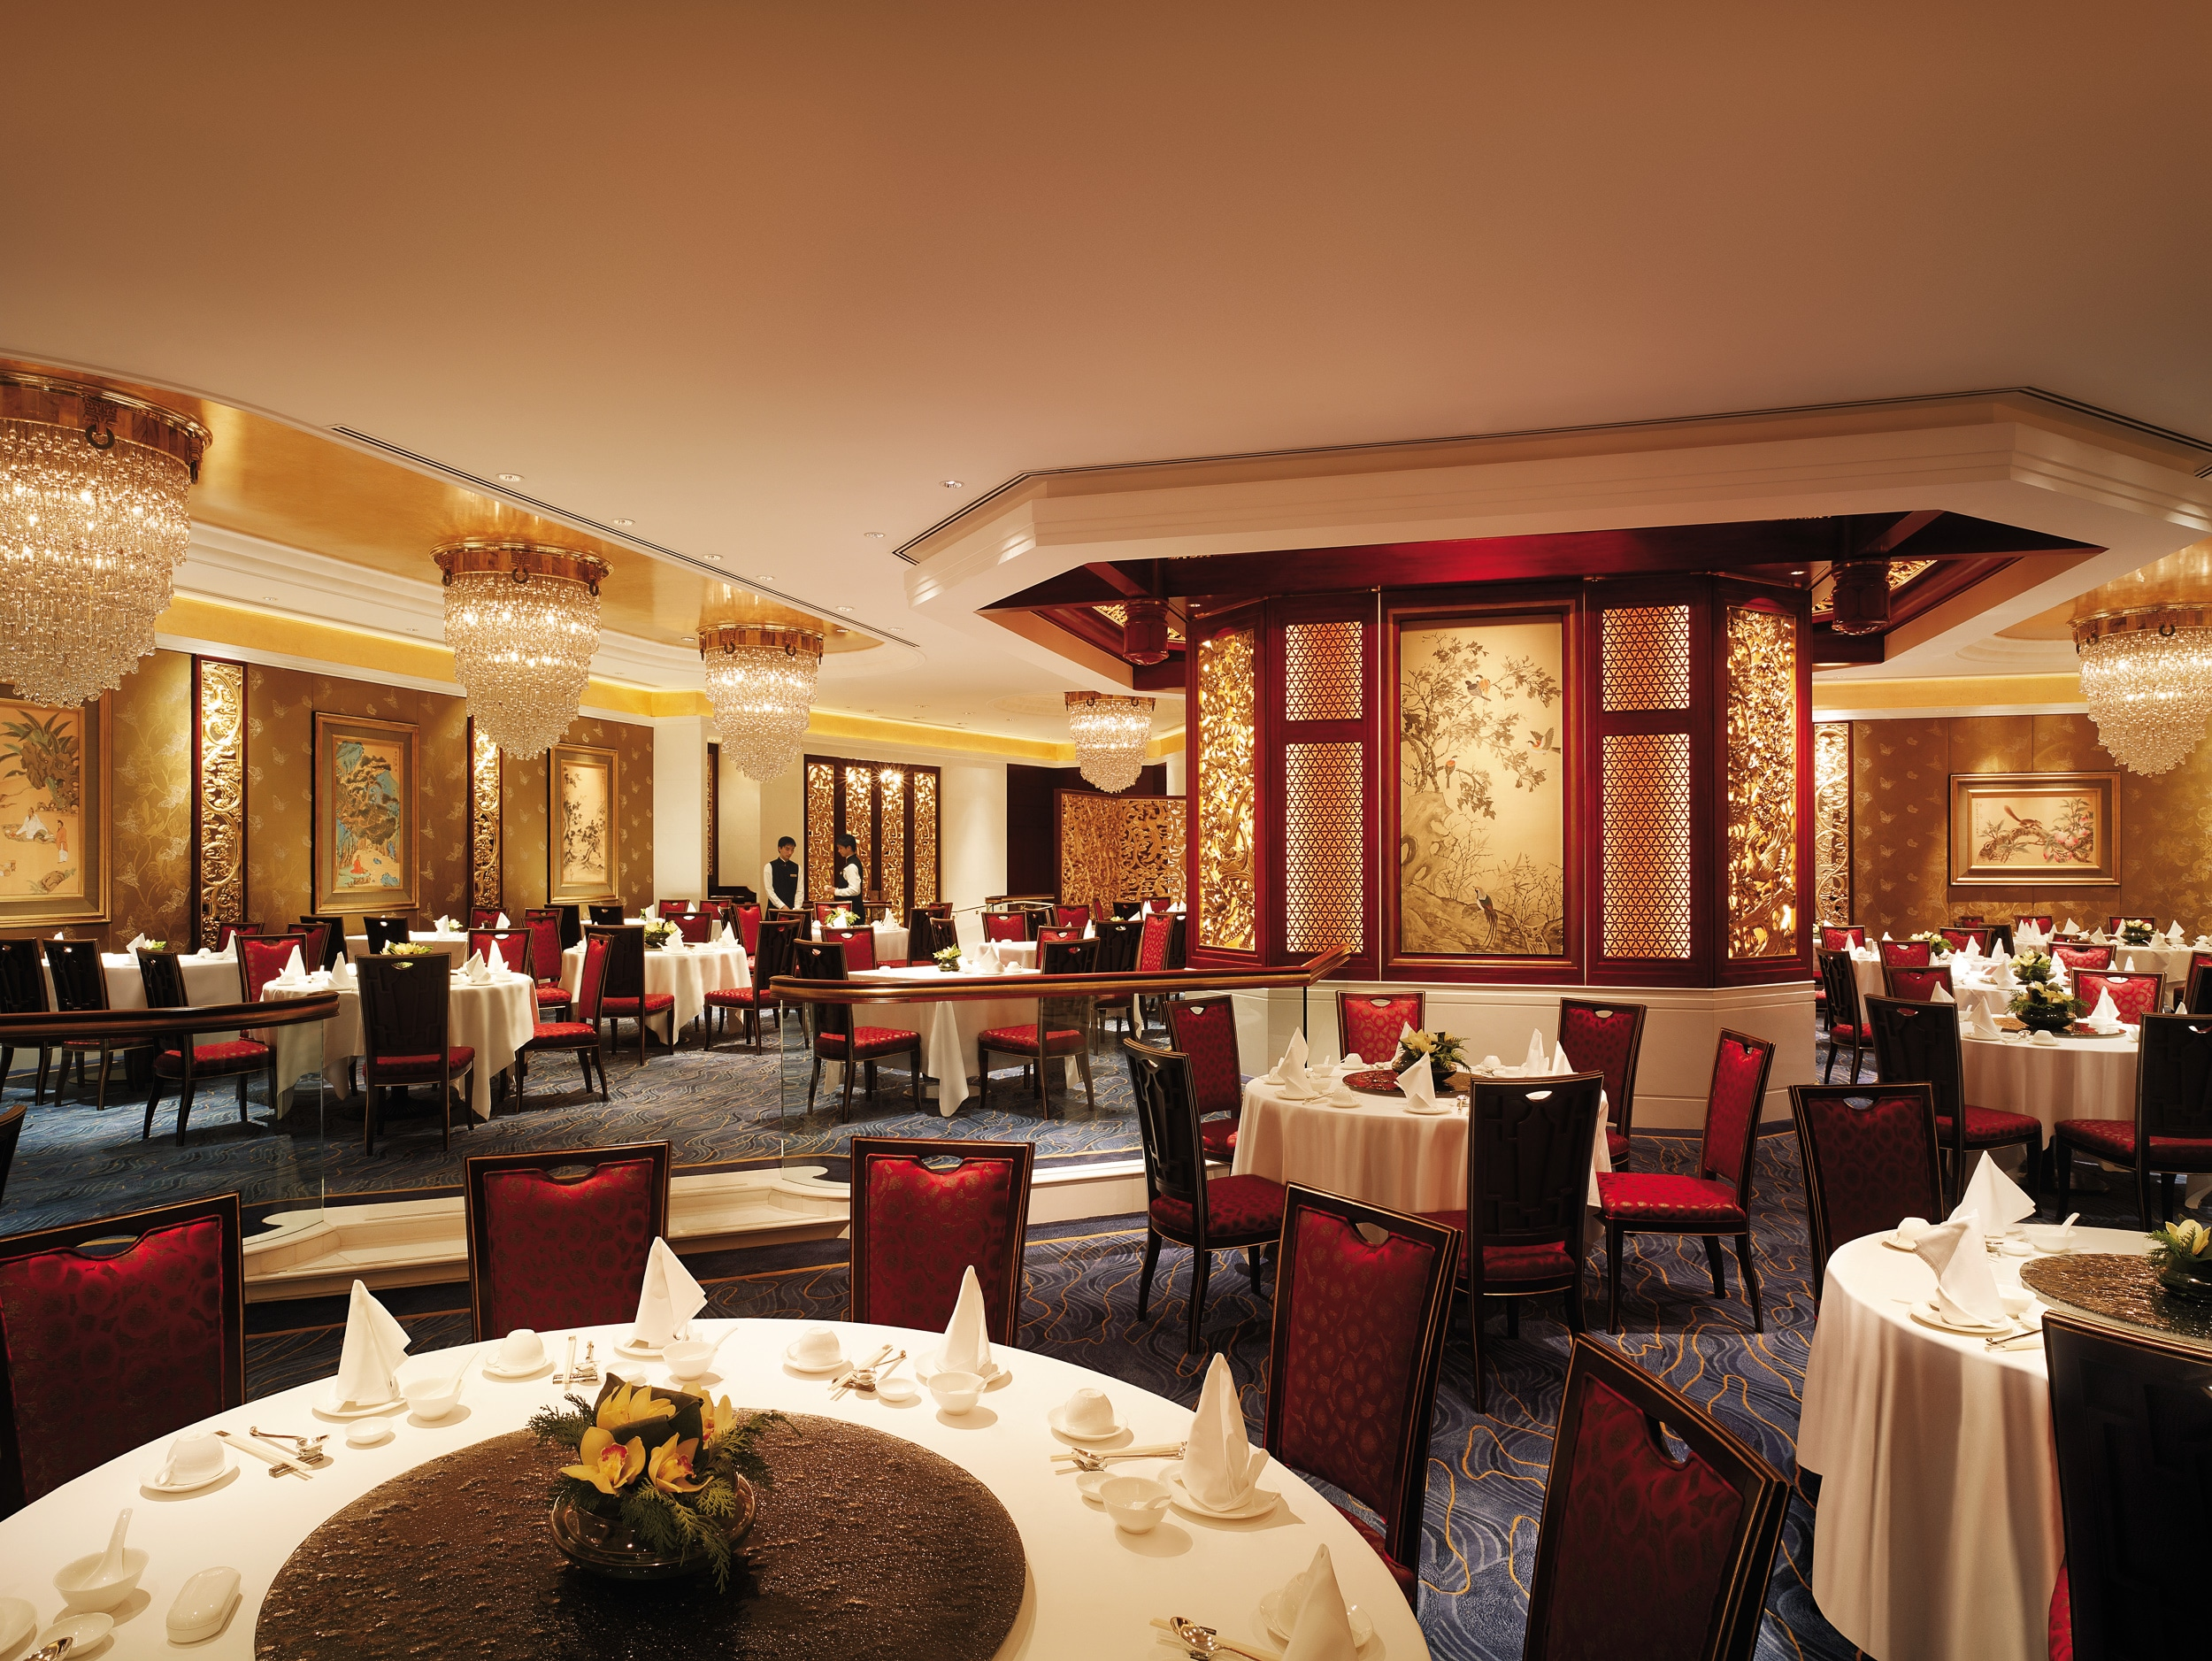 Summer Palace restaurant at Island Shangri-la Hong Kong